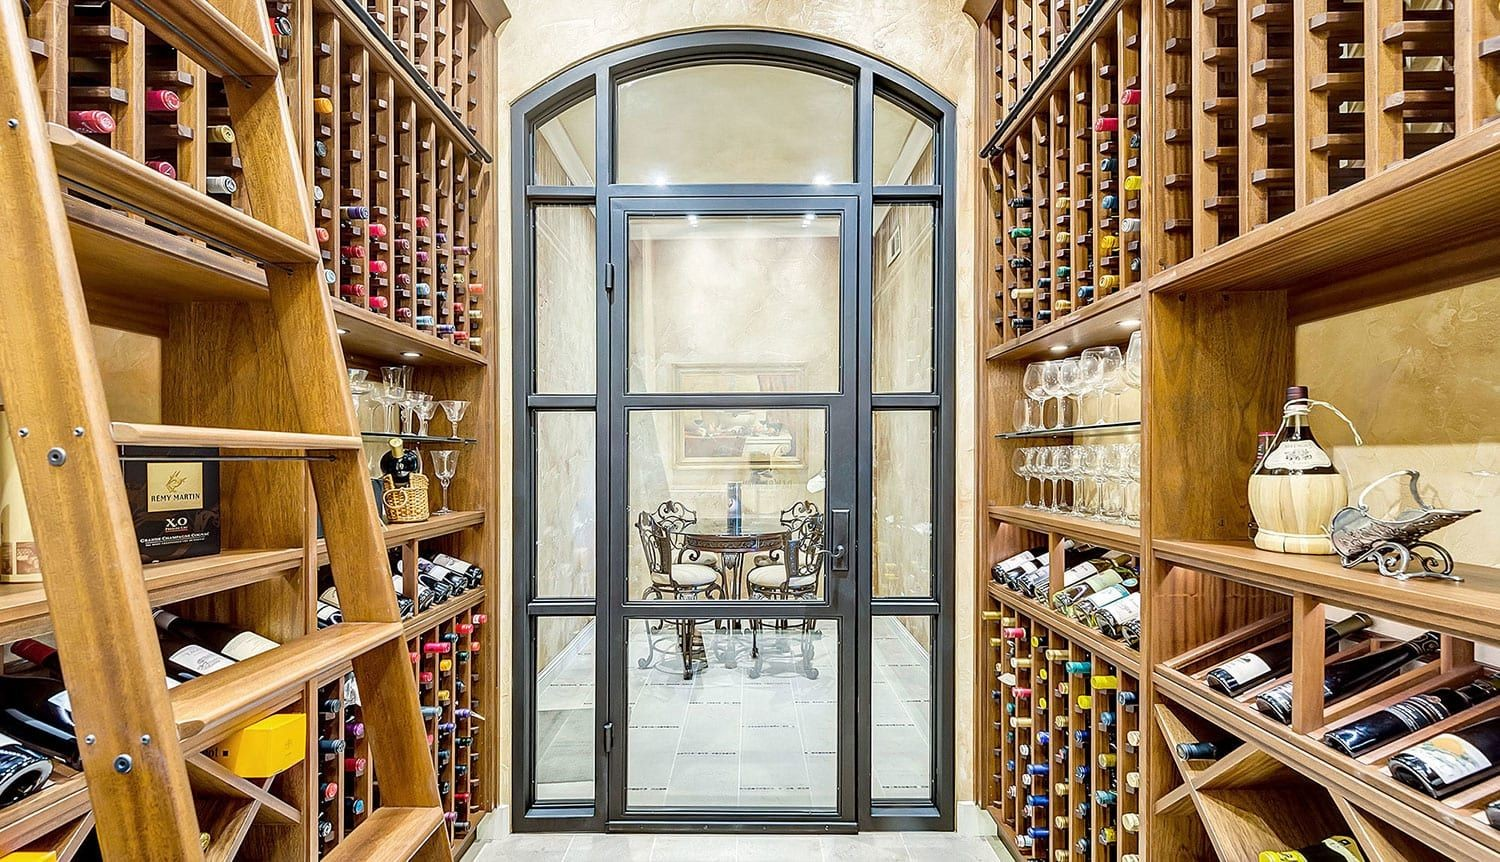 Stunning wood wine cellar custom made for a Texas home with a dramatic arched window and ladder.